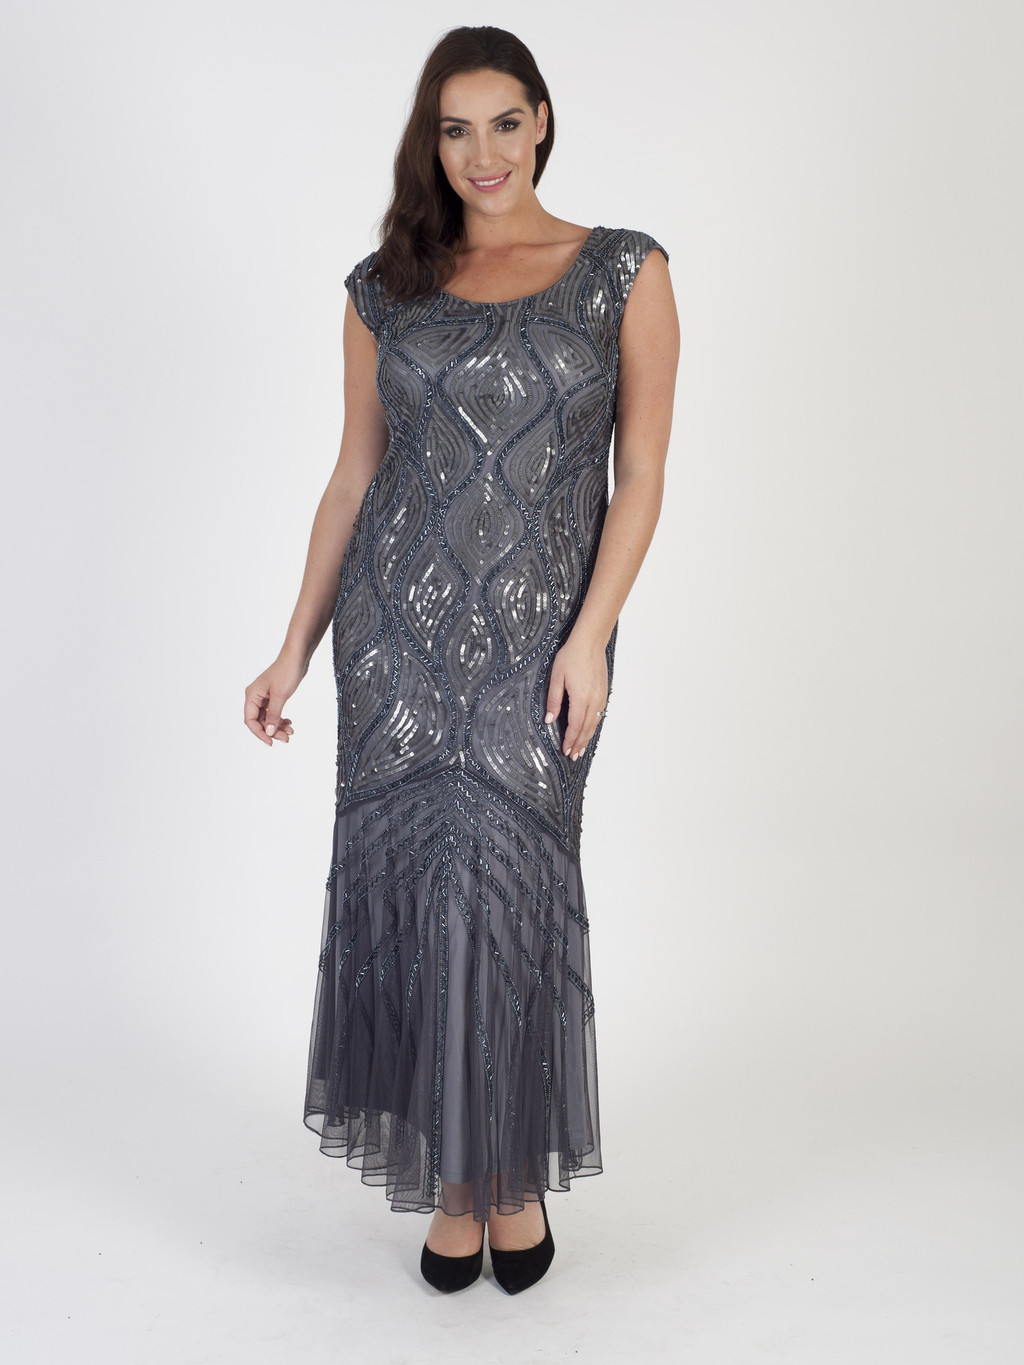 Dark Grey Beaded Mesh Dress - neckline: round neck; pattern: plain; sleeve style: sleeveless; style: maxi dress; length: ankle length; predominant colour: mid grey; occasions: evening; fit: body skimming; fibres: polyester/polyamide - 100%; sleeve length: sleeveless; pattern type: fabric; texture group: jersey - stretchy/drapey; embellishment: beading; season: a/w 2016; wardrobe: event; embellishment location: pattern